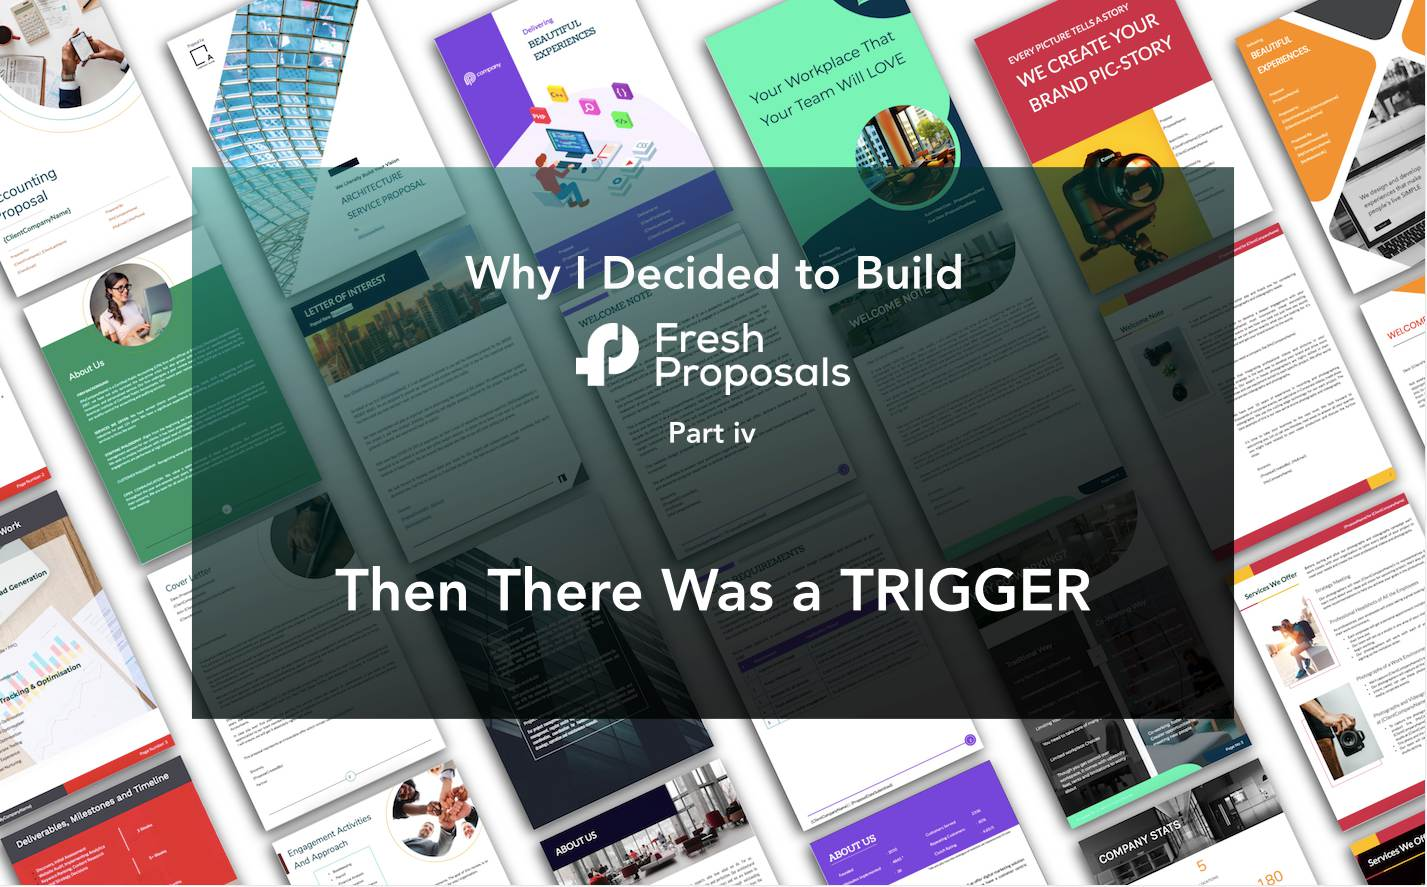 Why Fresh Proposals - The Trigger